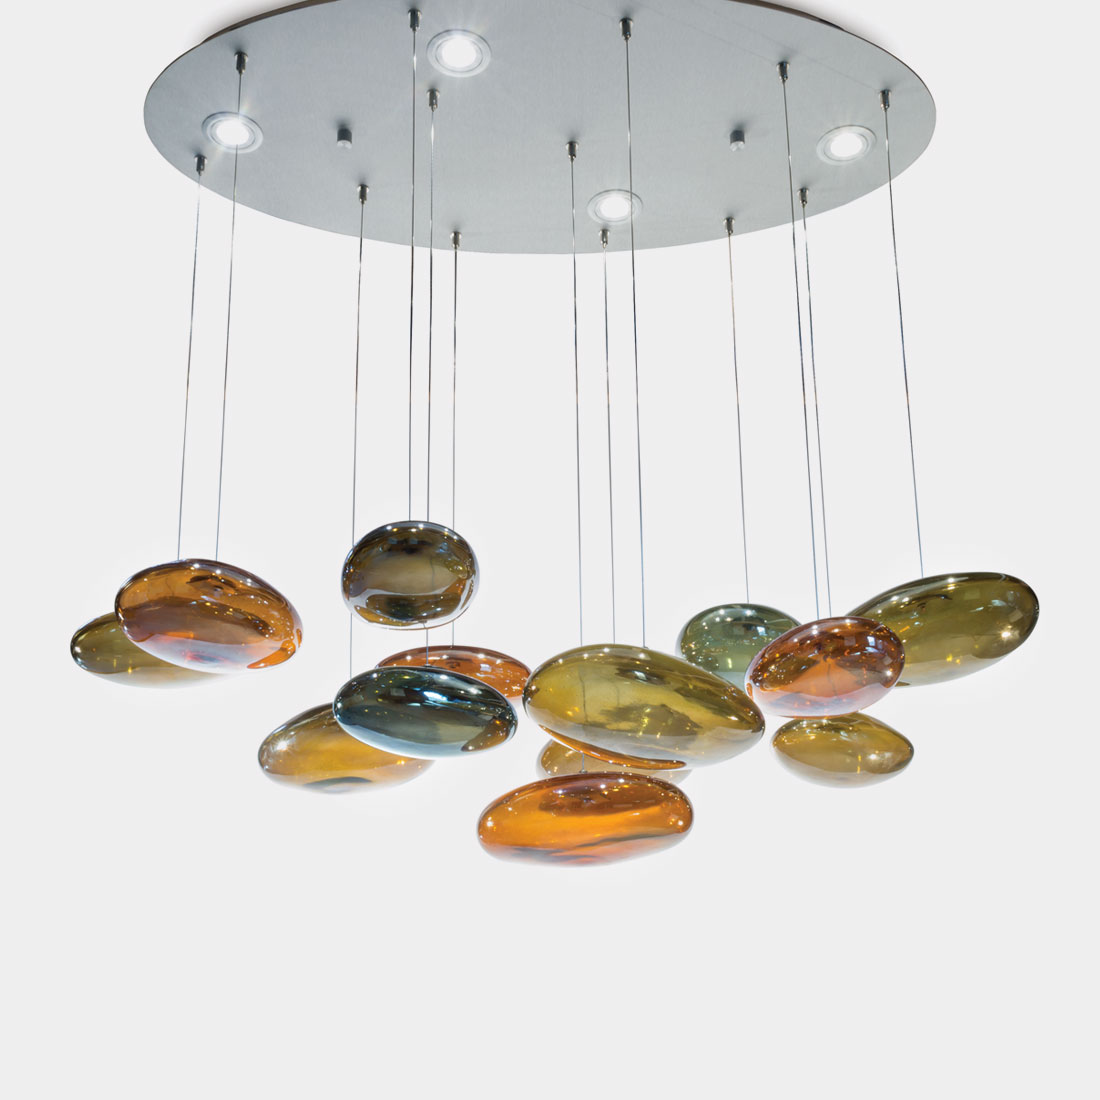 Koi Pond Chandelier Tracy Glover Studio Official Website